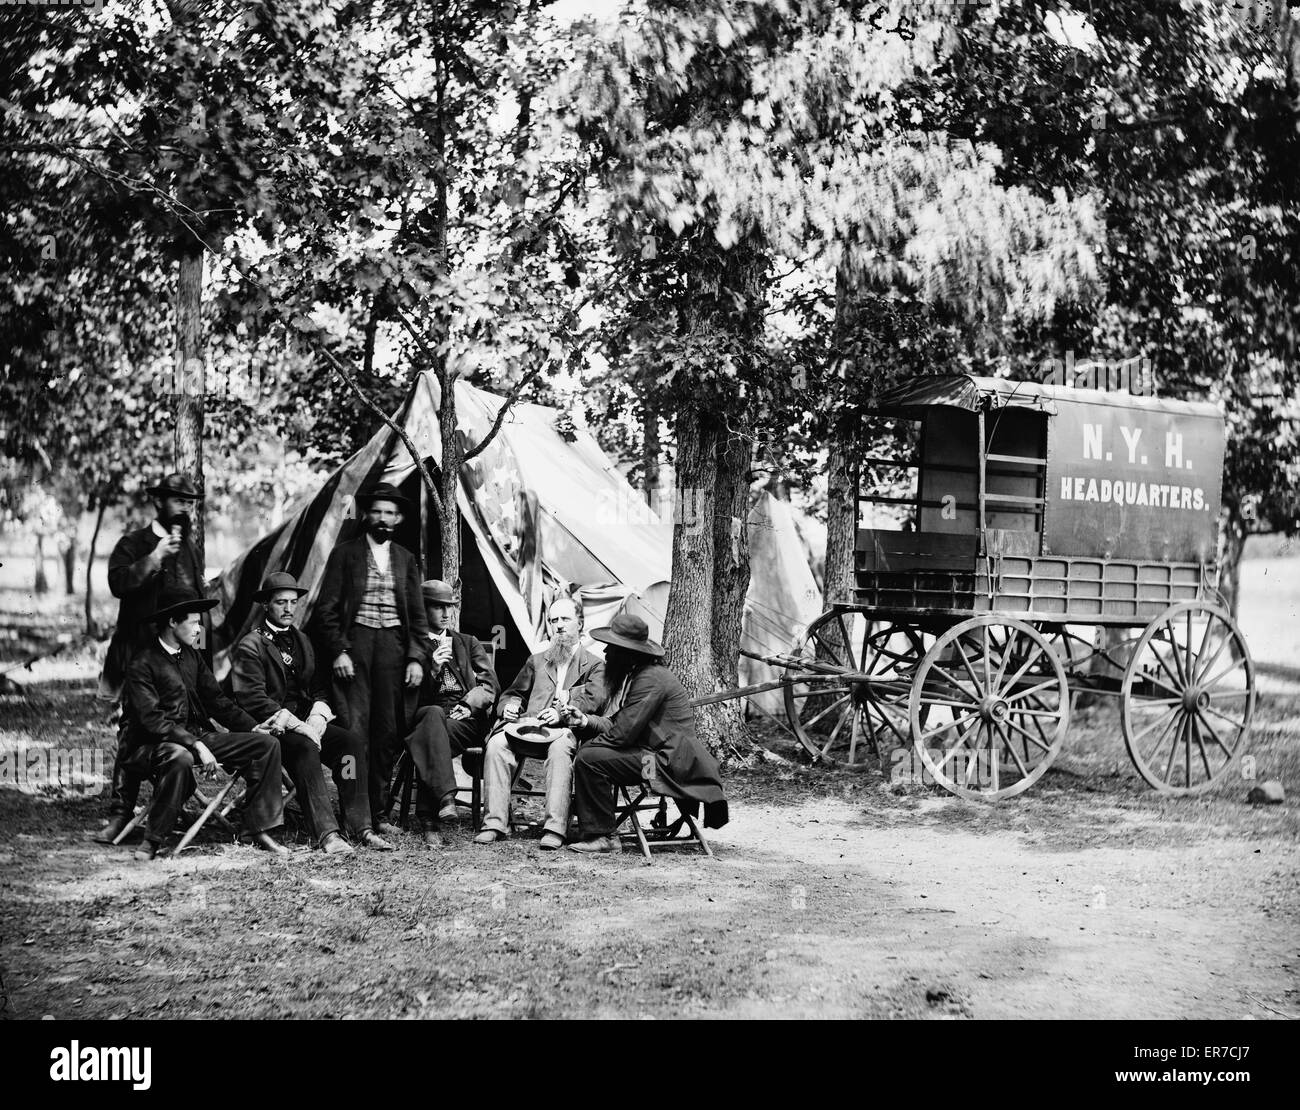 Group at tent and wagon of the New York Herald. Photograph from the main eastern theater of war Meade in Virginia August-November 1863. Date 1863 August. & Bealeton Va. Group at tent and wagon of the New York Herald Stock ...